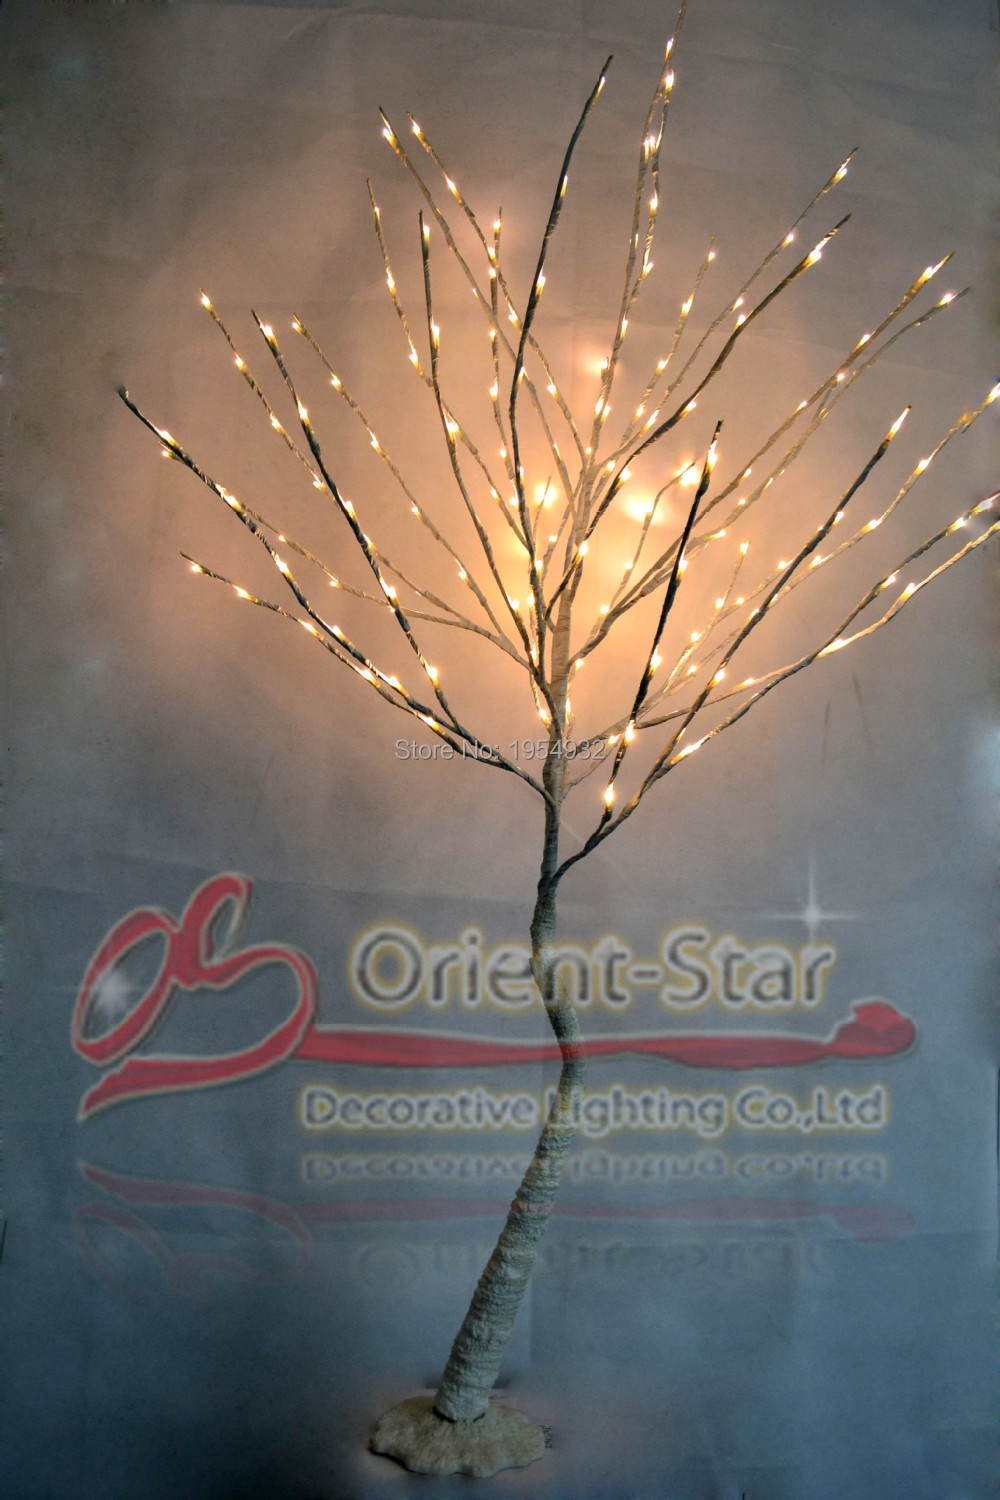 Special Offer 2PC/Lot 52 with 160PCs Blossom Plum Tree Light in 3V Voltage With Base, Branch Tree Light with blossome flowers - 3